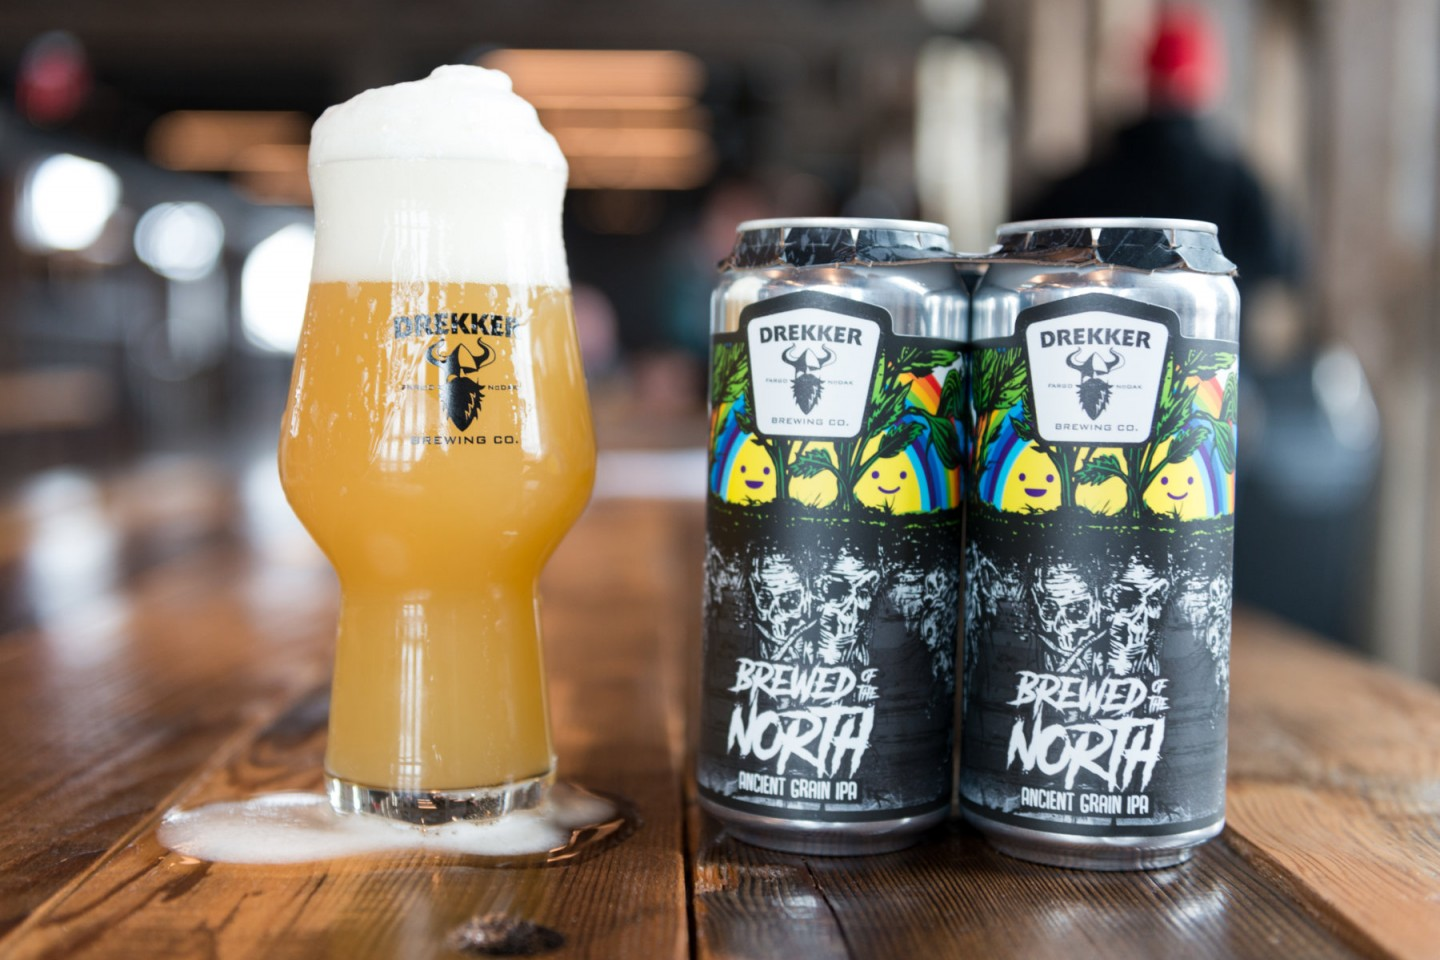 Brewed of the North cans and glass